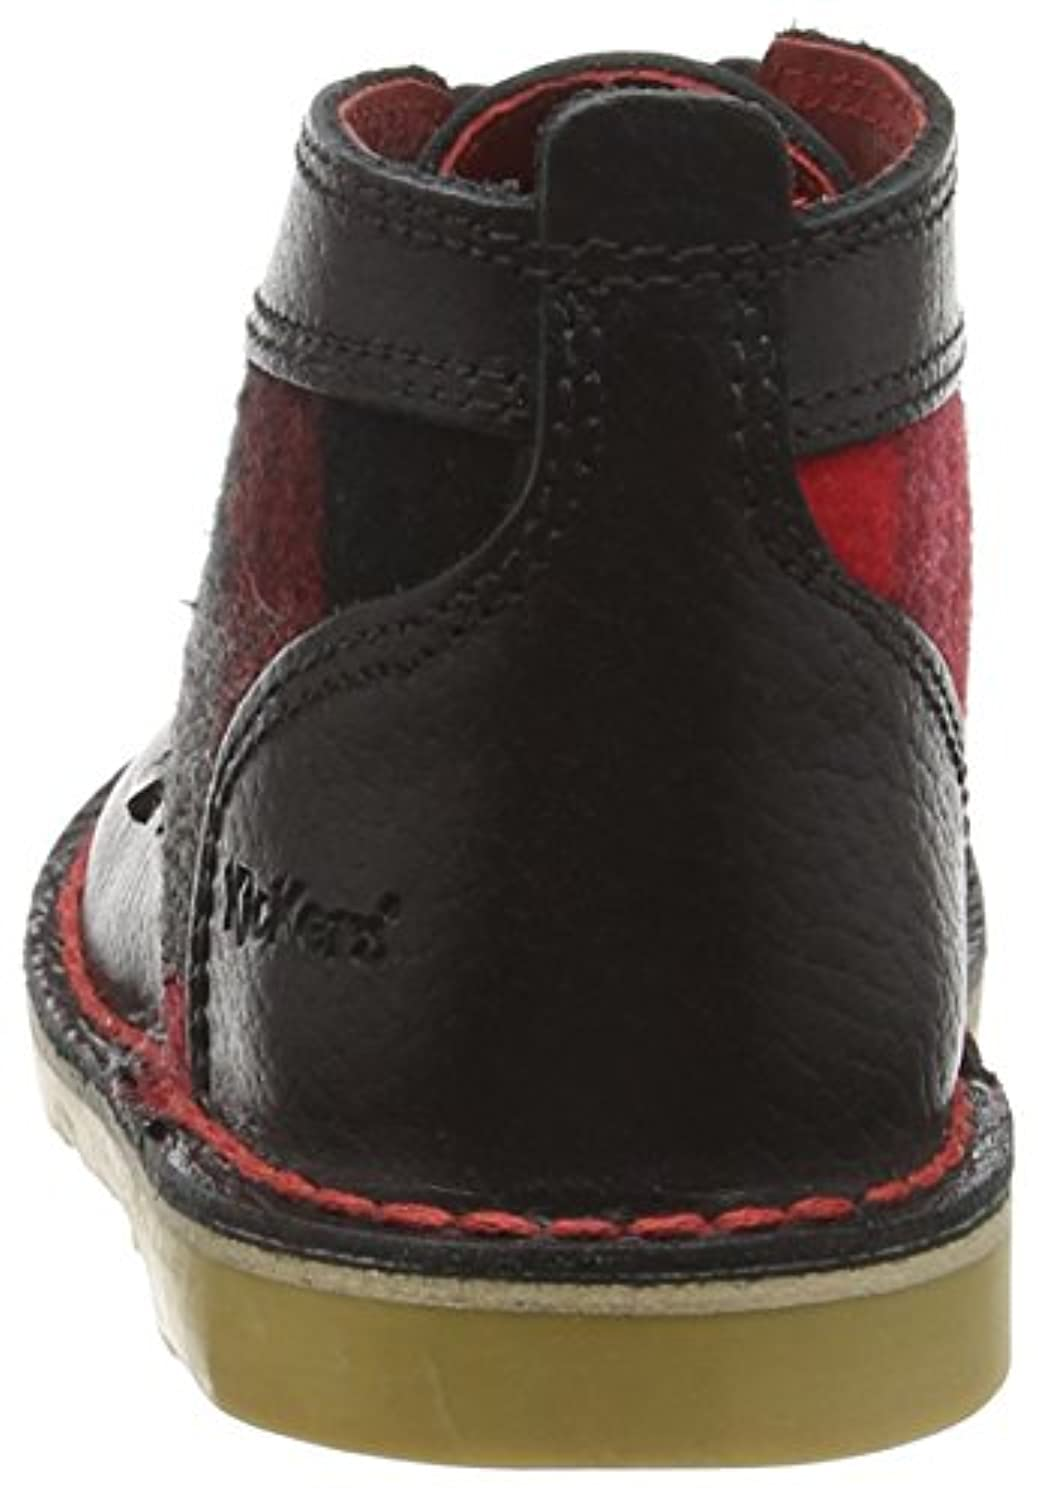 Kickers Boys' Adlar Legendry Ankle Boots, Black (Black), 6 Child UK 23 EU